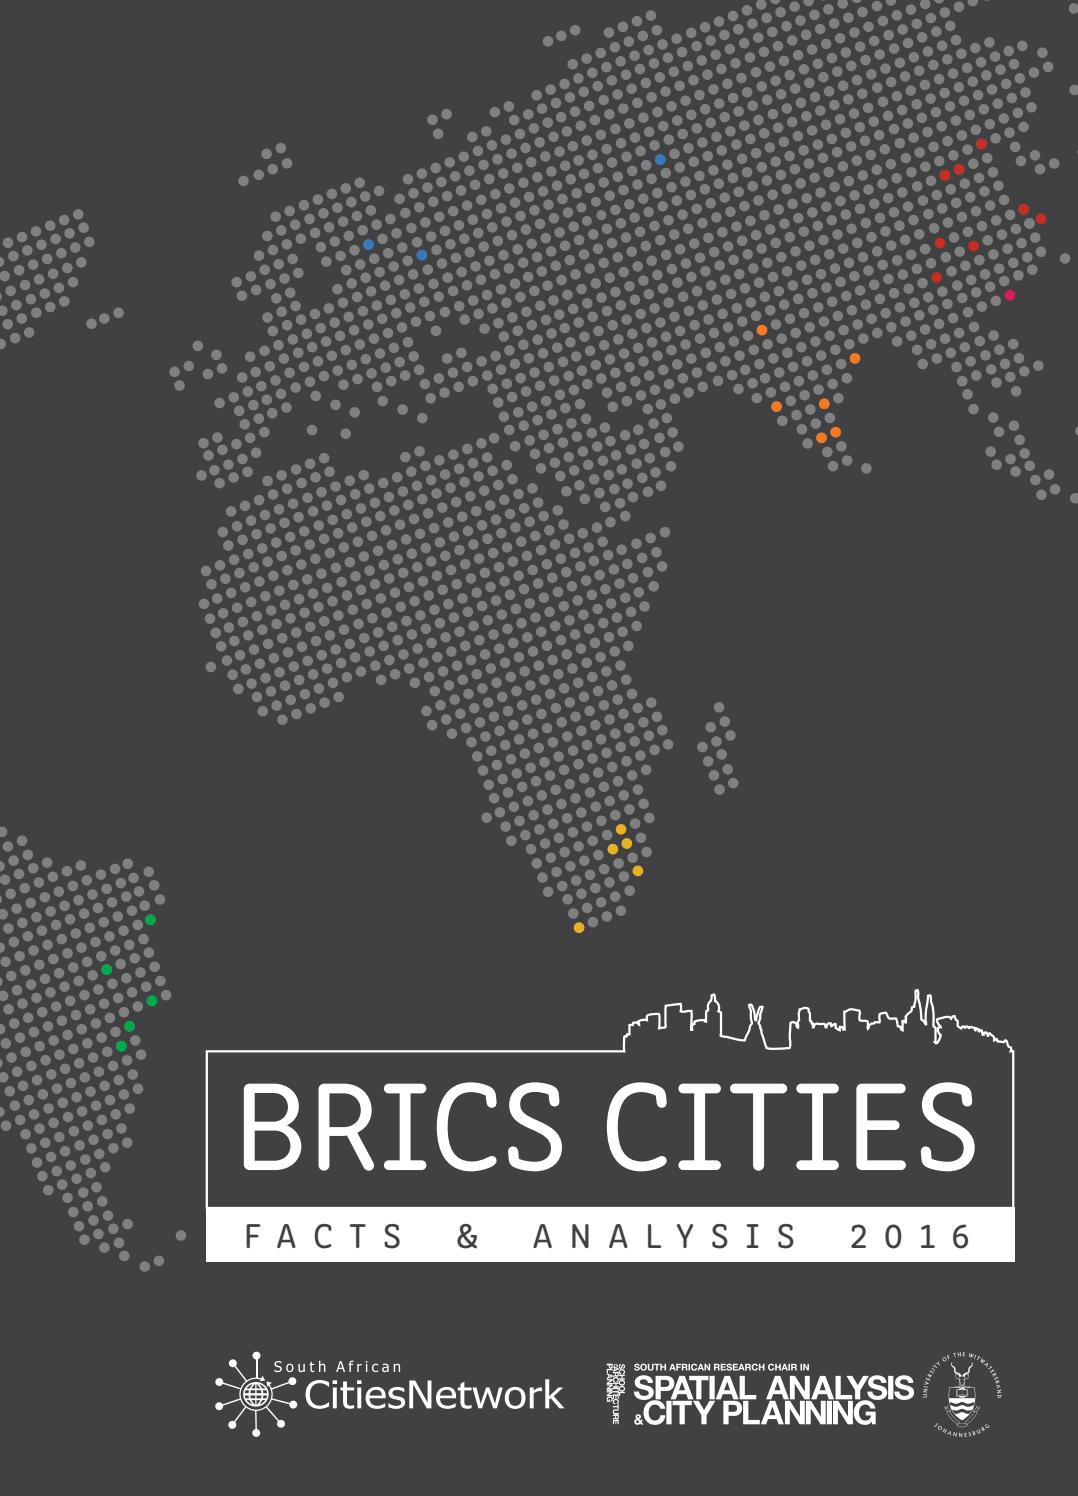 BRICS CITIES: Facts & Analysis 2016 by South African